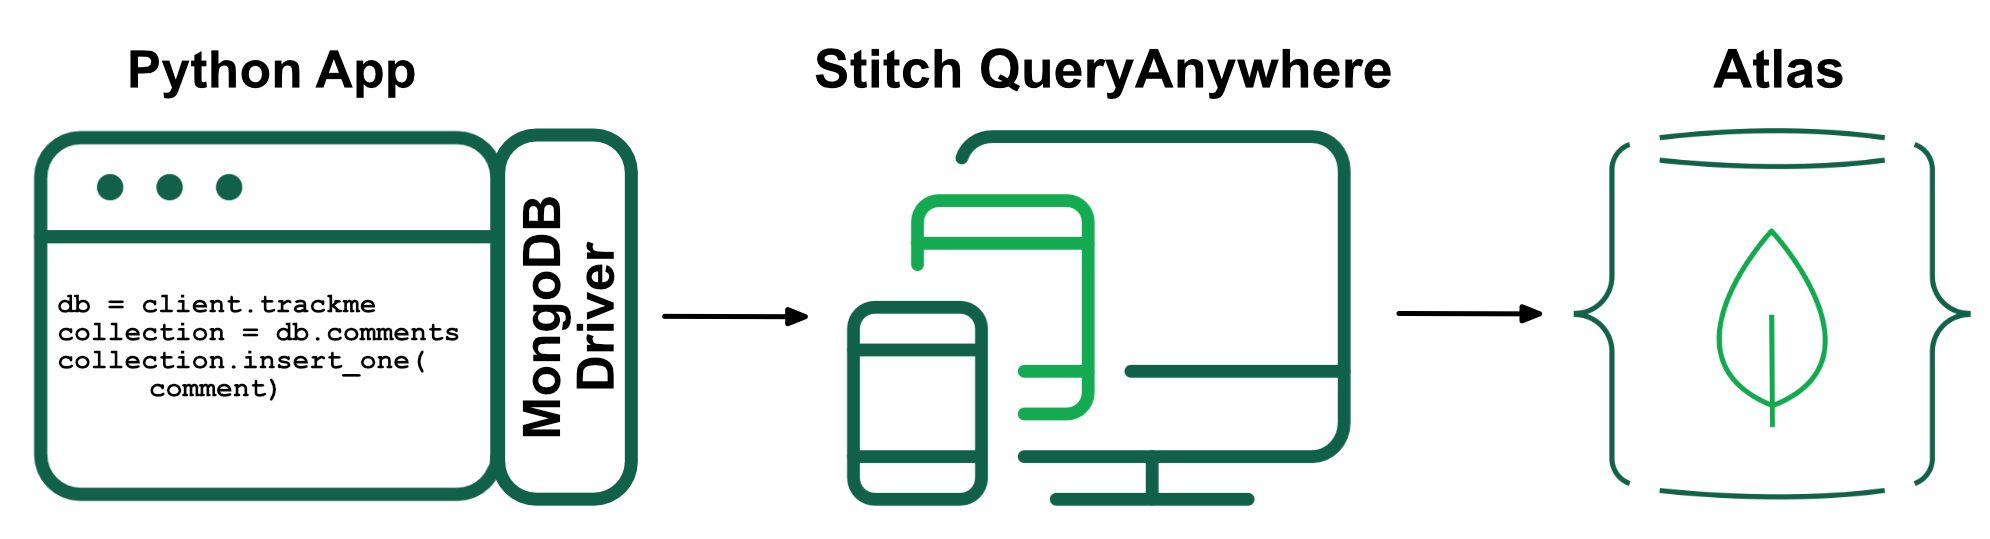 Connecting to MongoDB Stitch using the MongoDB Python Driver